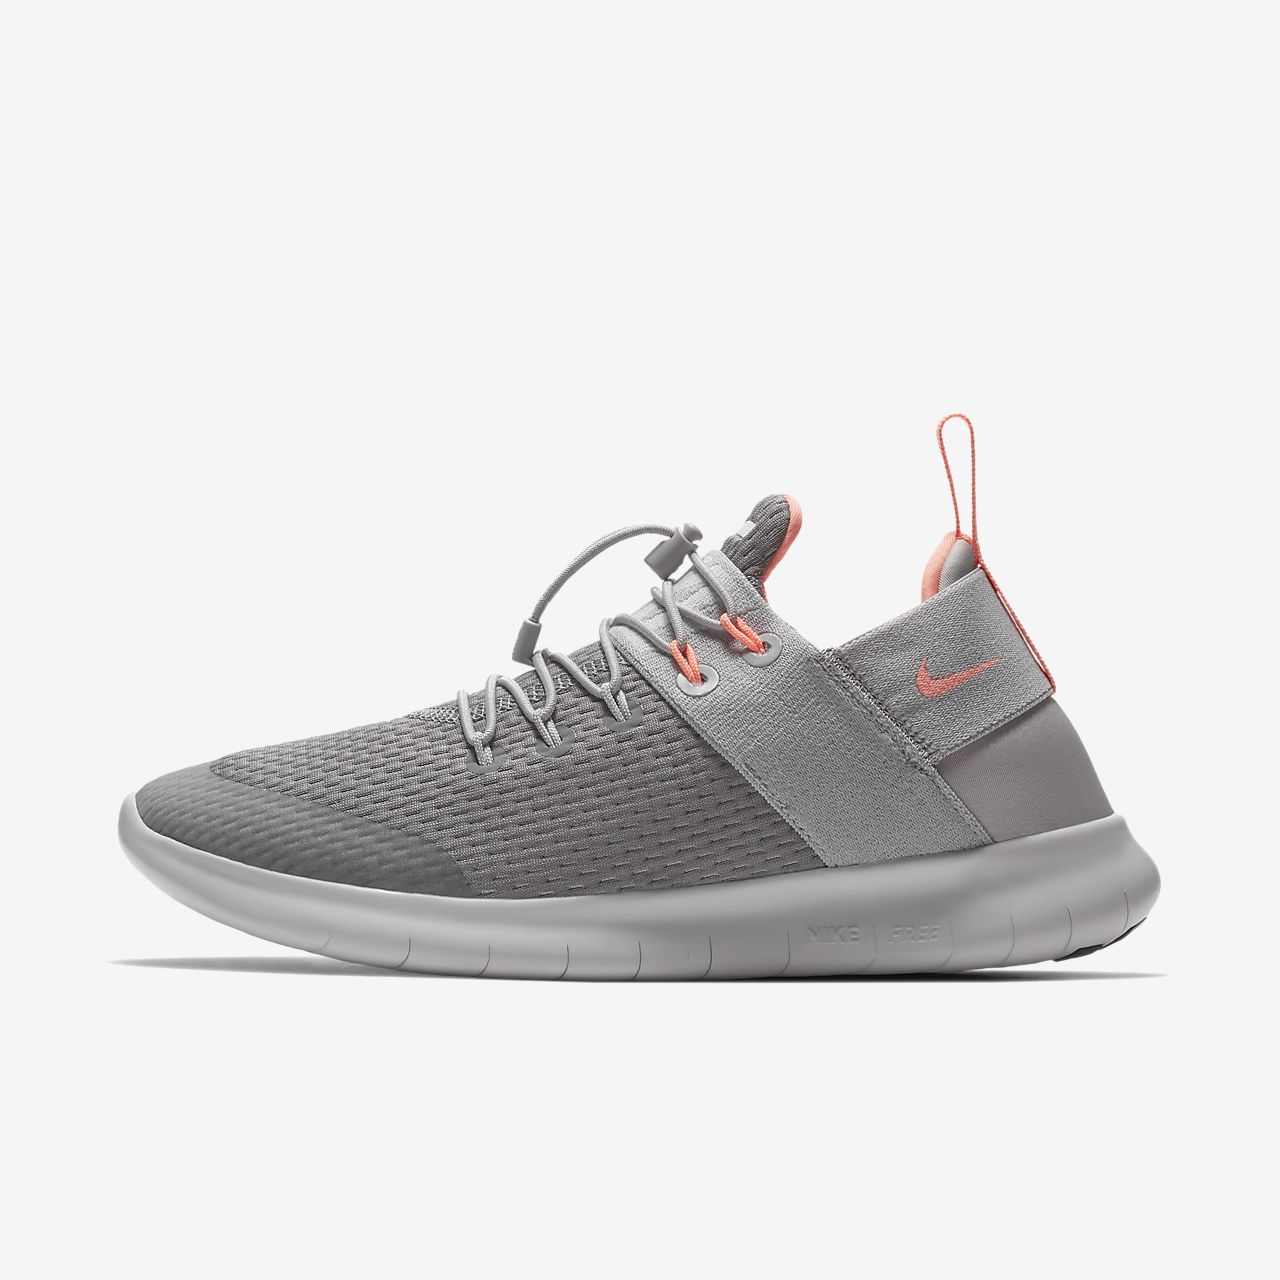 cheap sale excellent 2018 Casual Shoes EXP-X14 WMNS Shoes Just Do It White Black Wolf Grey Total Orange Mens Women Sports Sneakers Off Designer Shoes outlet big discount cheap fashionable clearance real amazon cheap price WVTNtGb